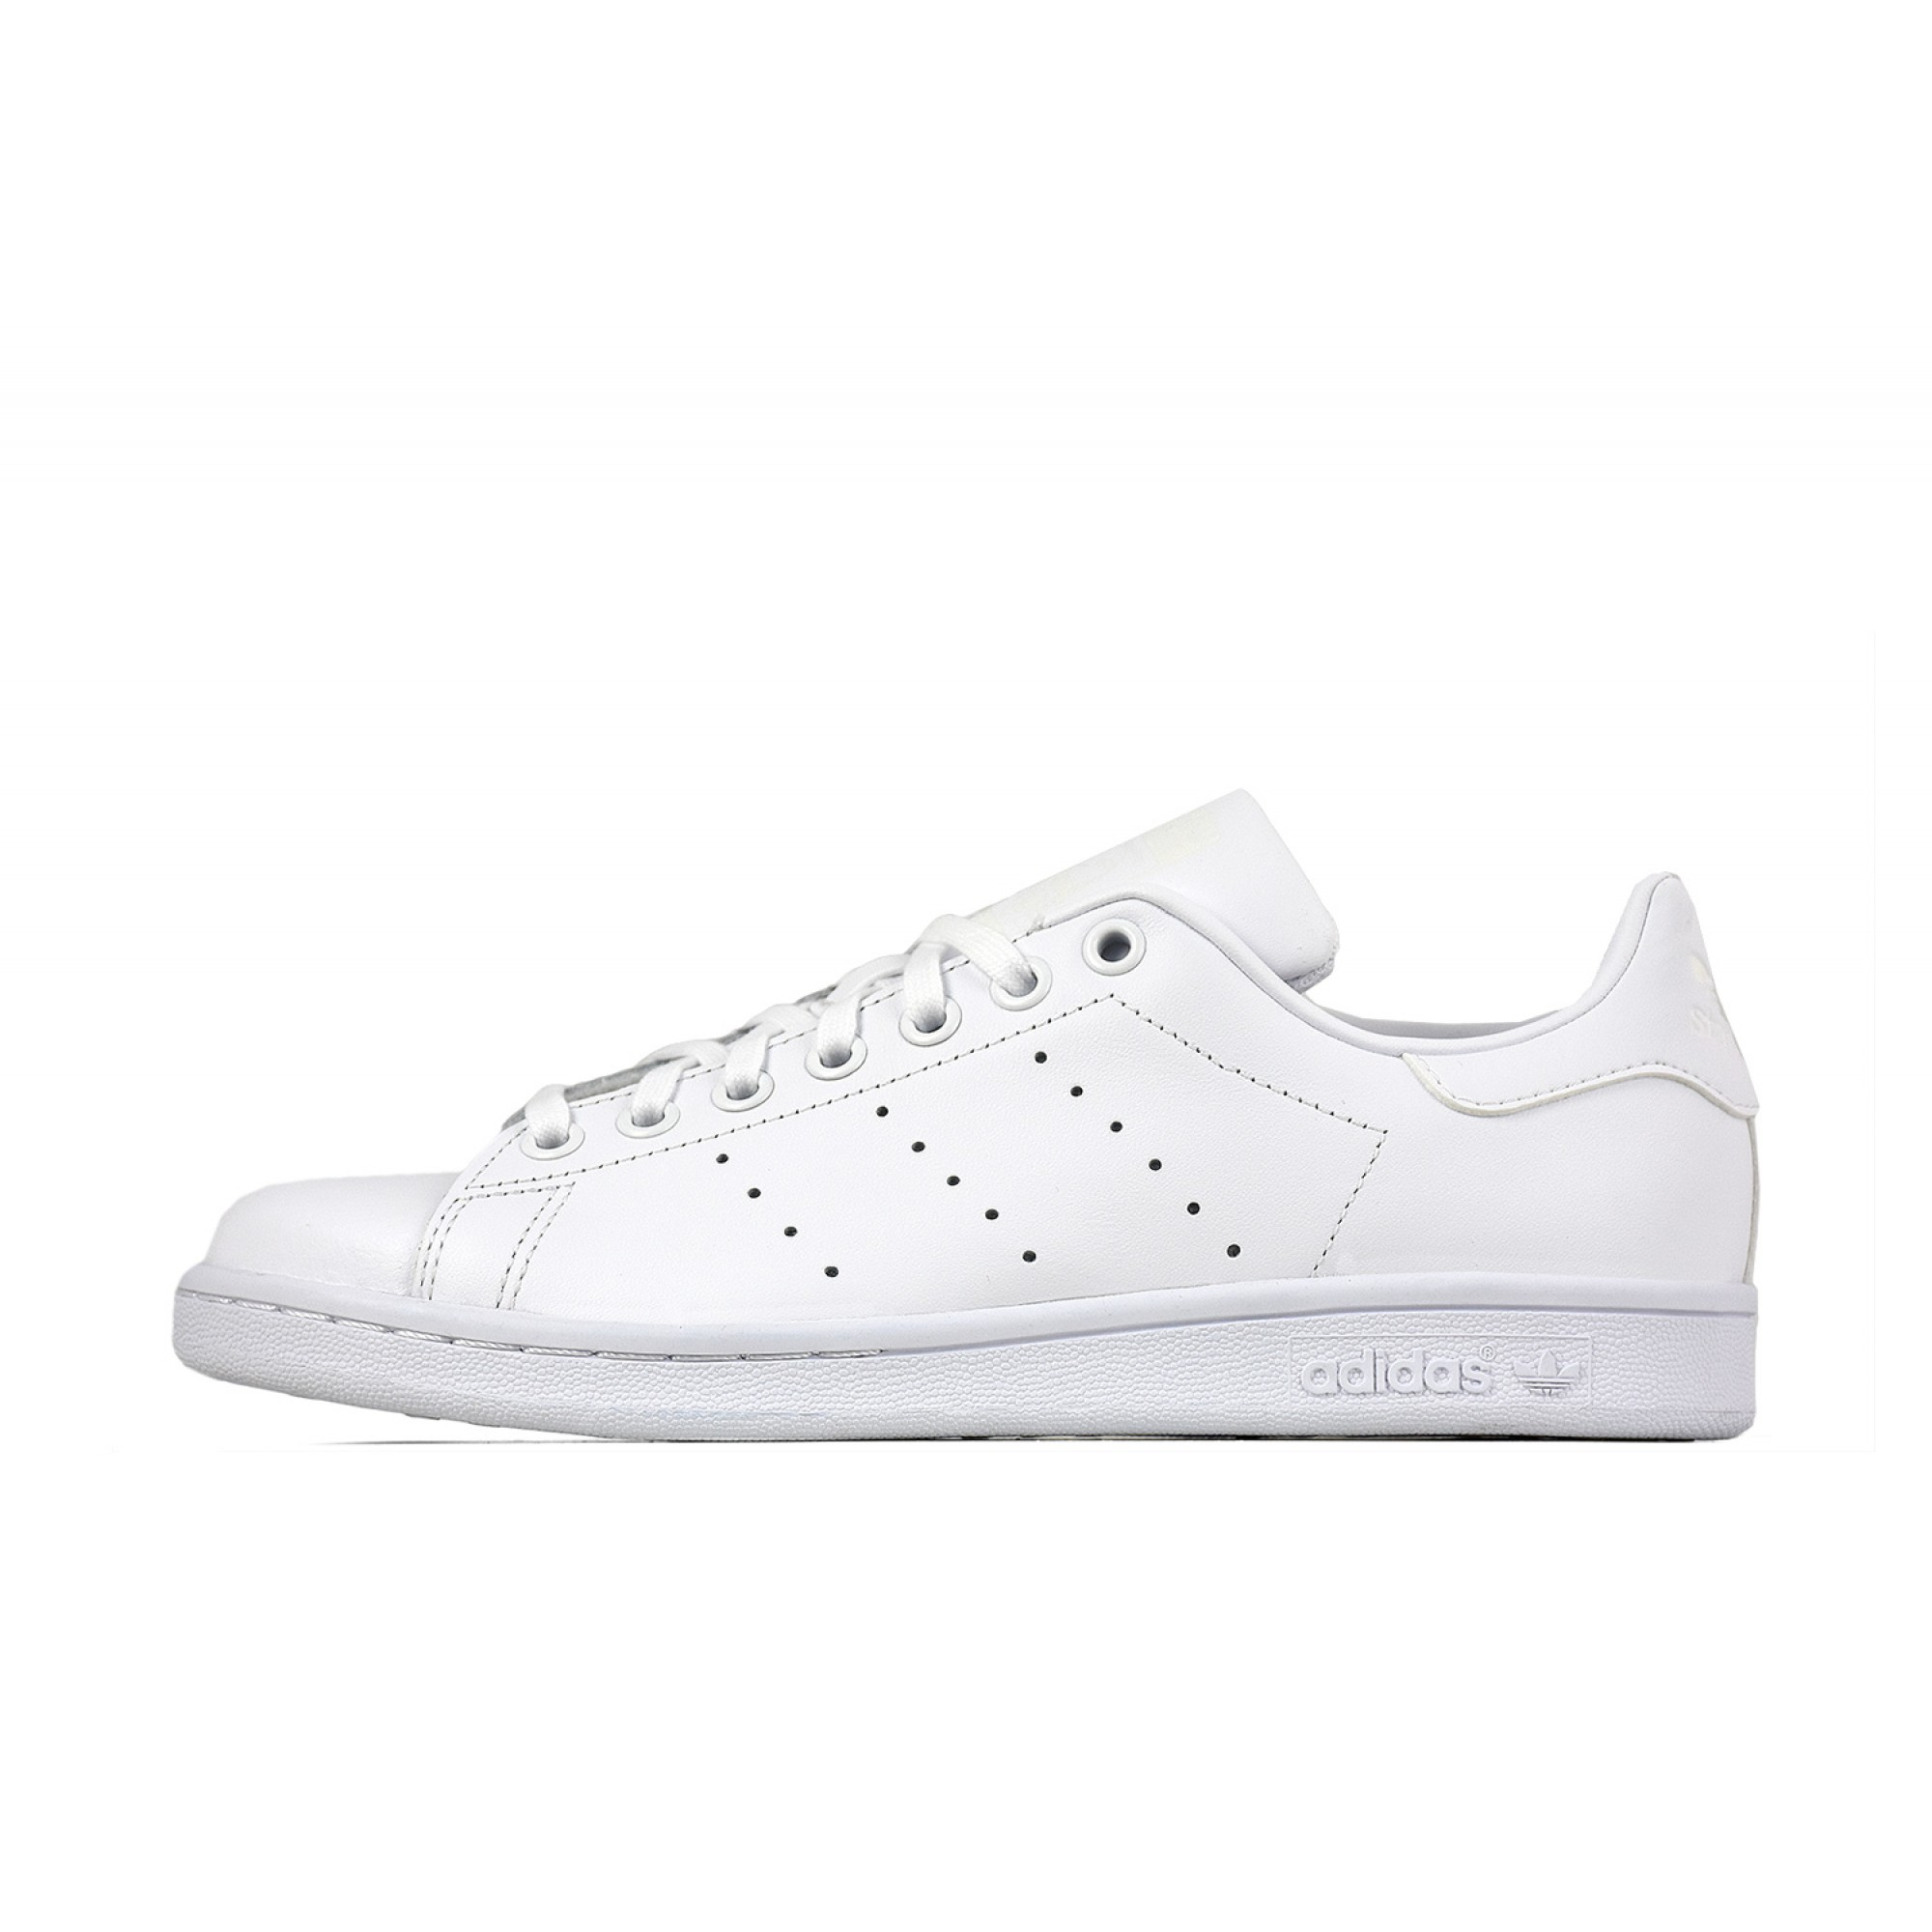 Women's Adidas Originals Stan Smith Total White S75104| Γυναικείο Παπούτσι